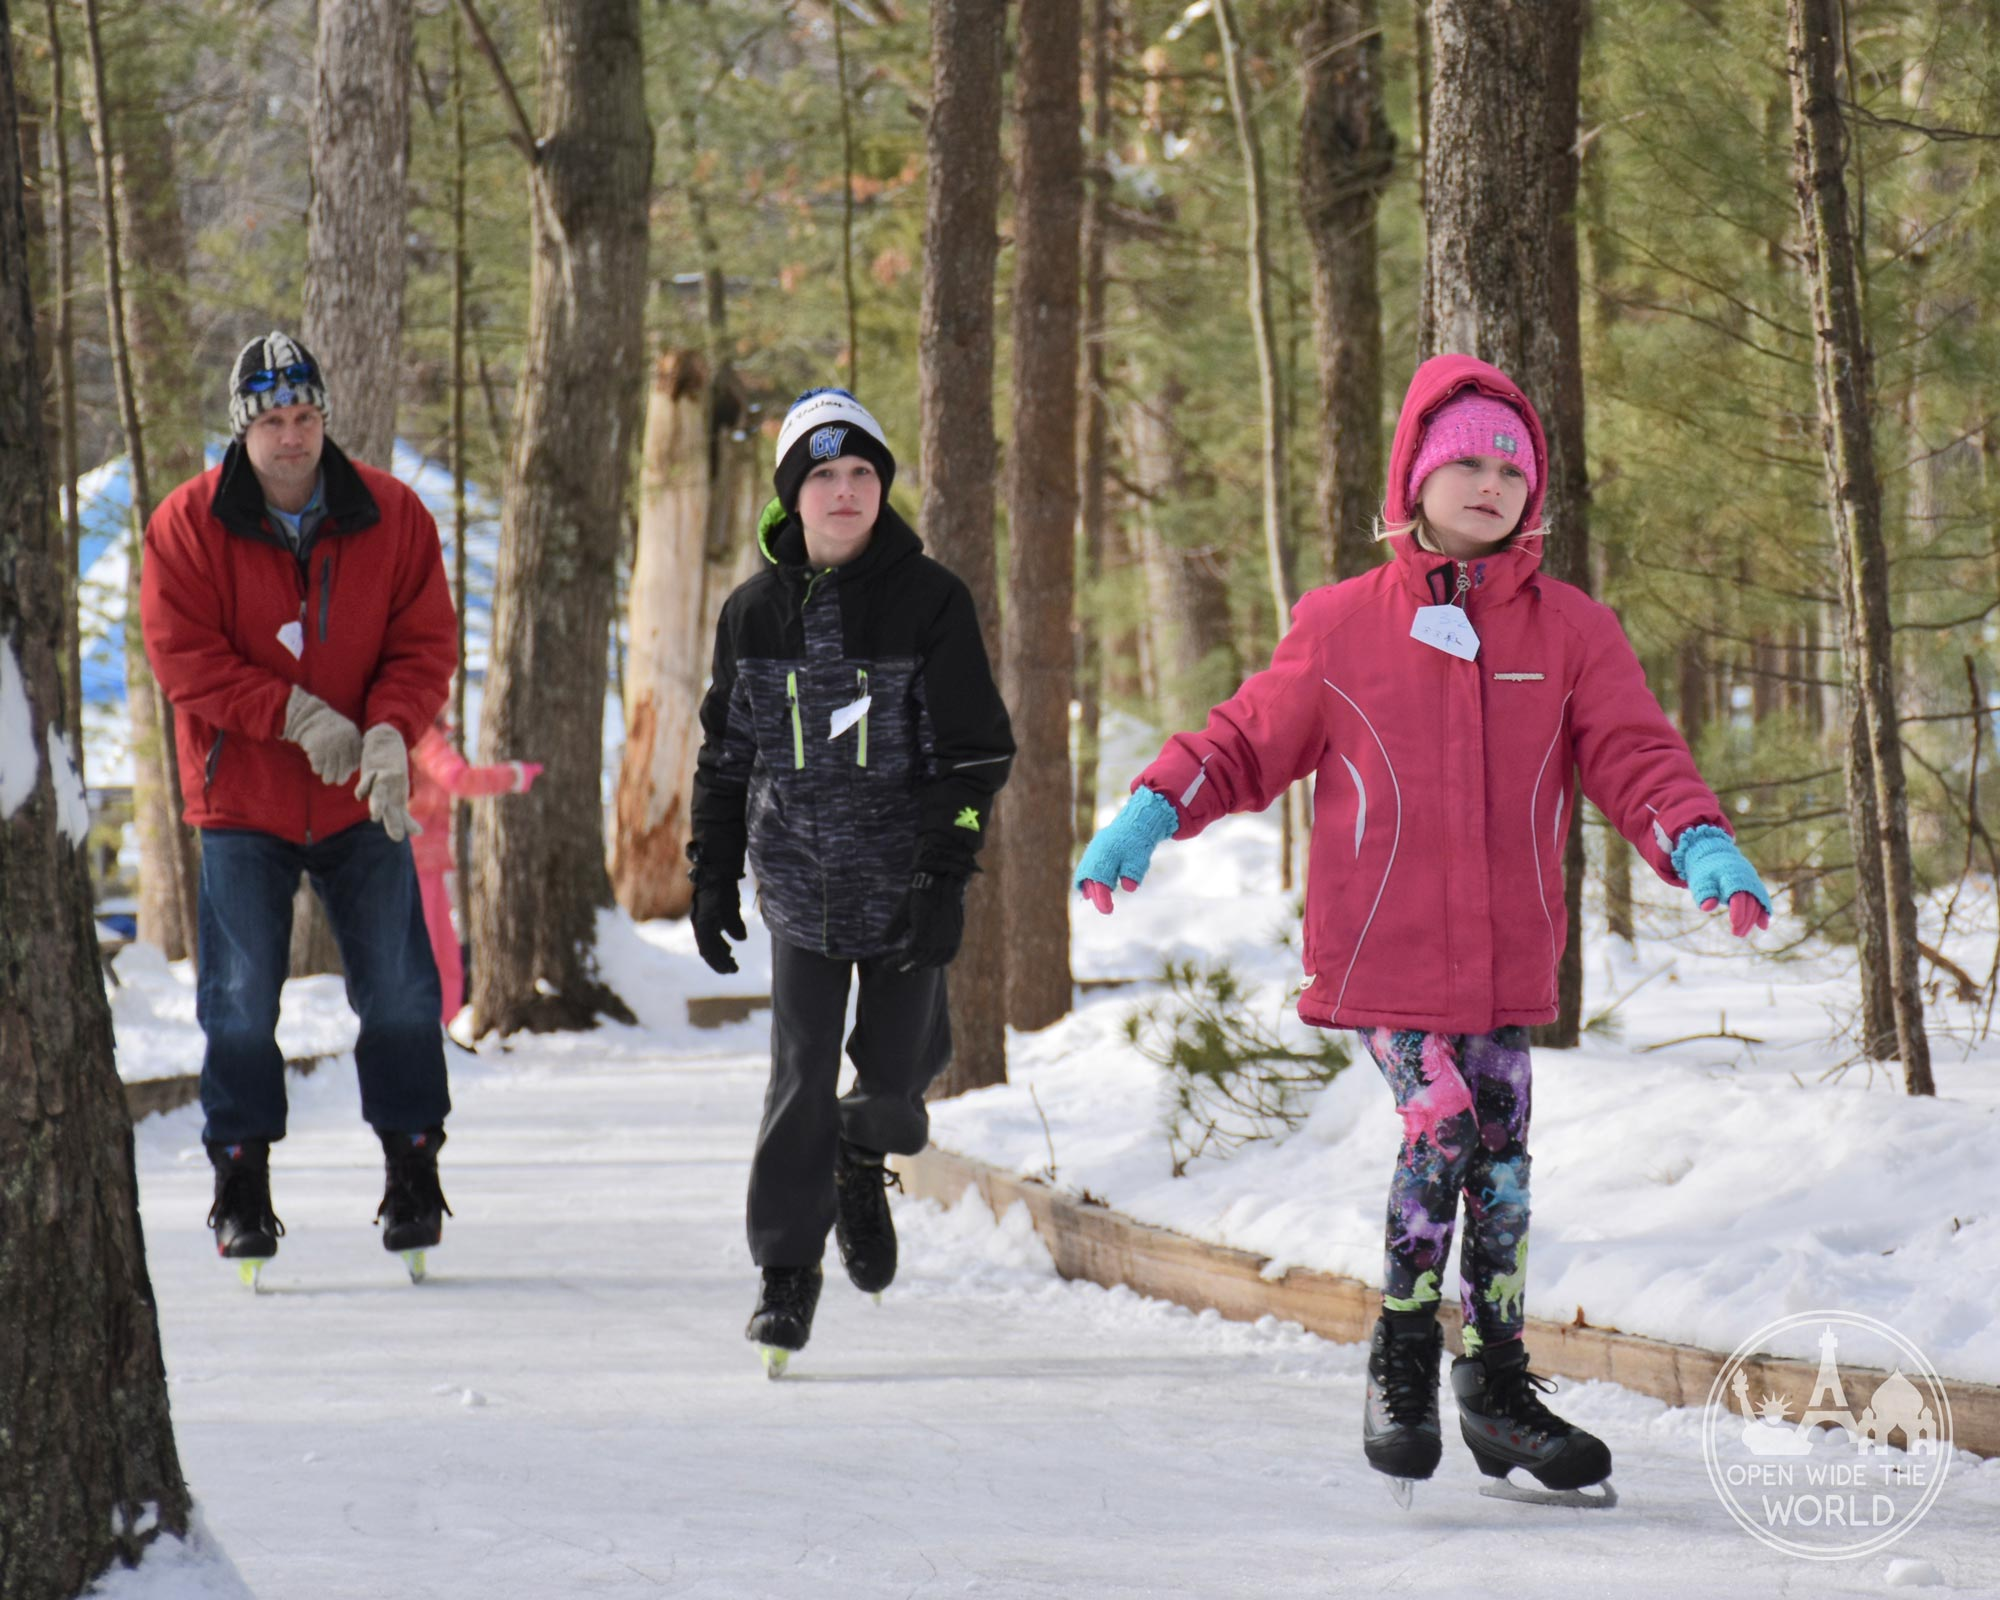 Muskegon Winter Sports Complex is home to two acres of ice skating trails and ice rinks. A fun winter activity in West Michigan! #iceskating #openwidetheworld